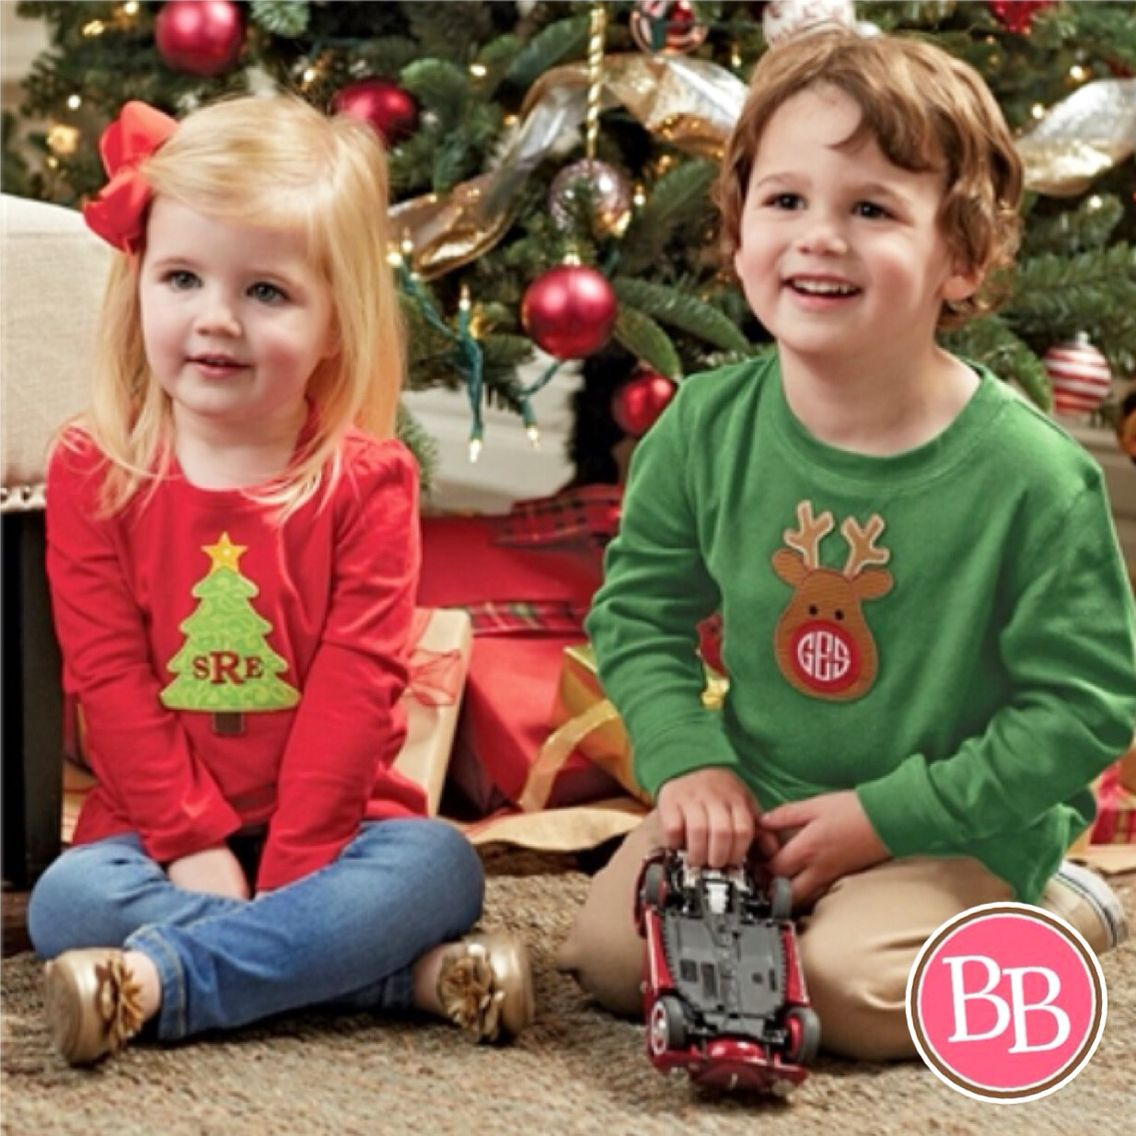 Our NEW Mud Pie Christmas Monogram Patch can transform any tee into a uniquely personalized and festive holiday top!!! • $5.99 + Monogram • 4 Styles!! #BBKids #Christmas #holidaypreview #monogram #patch #mudpie www.brandisboutiqueshop.co > Kids > Holiday Outfits > Christmas